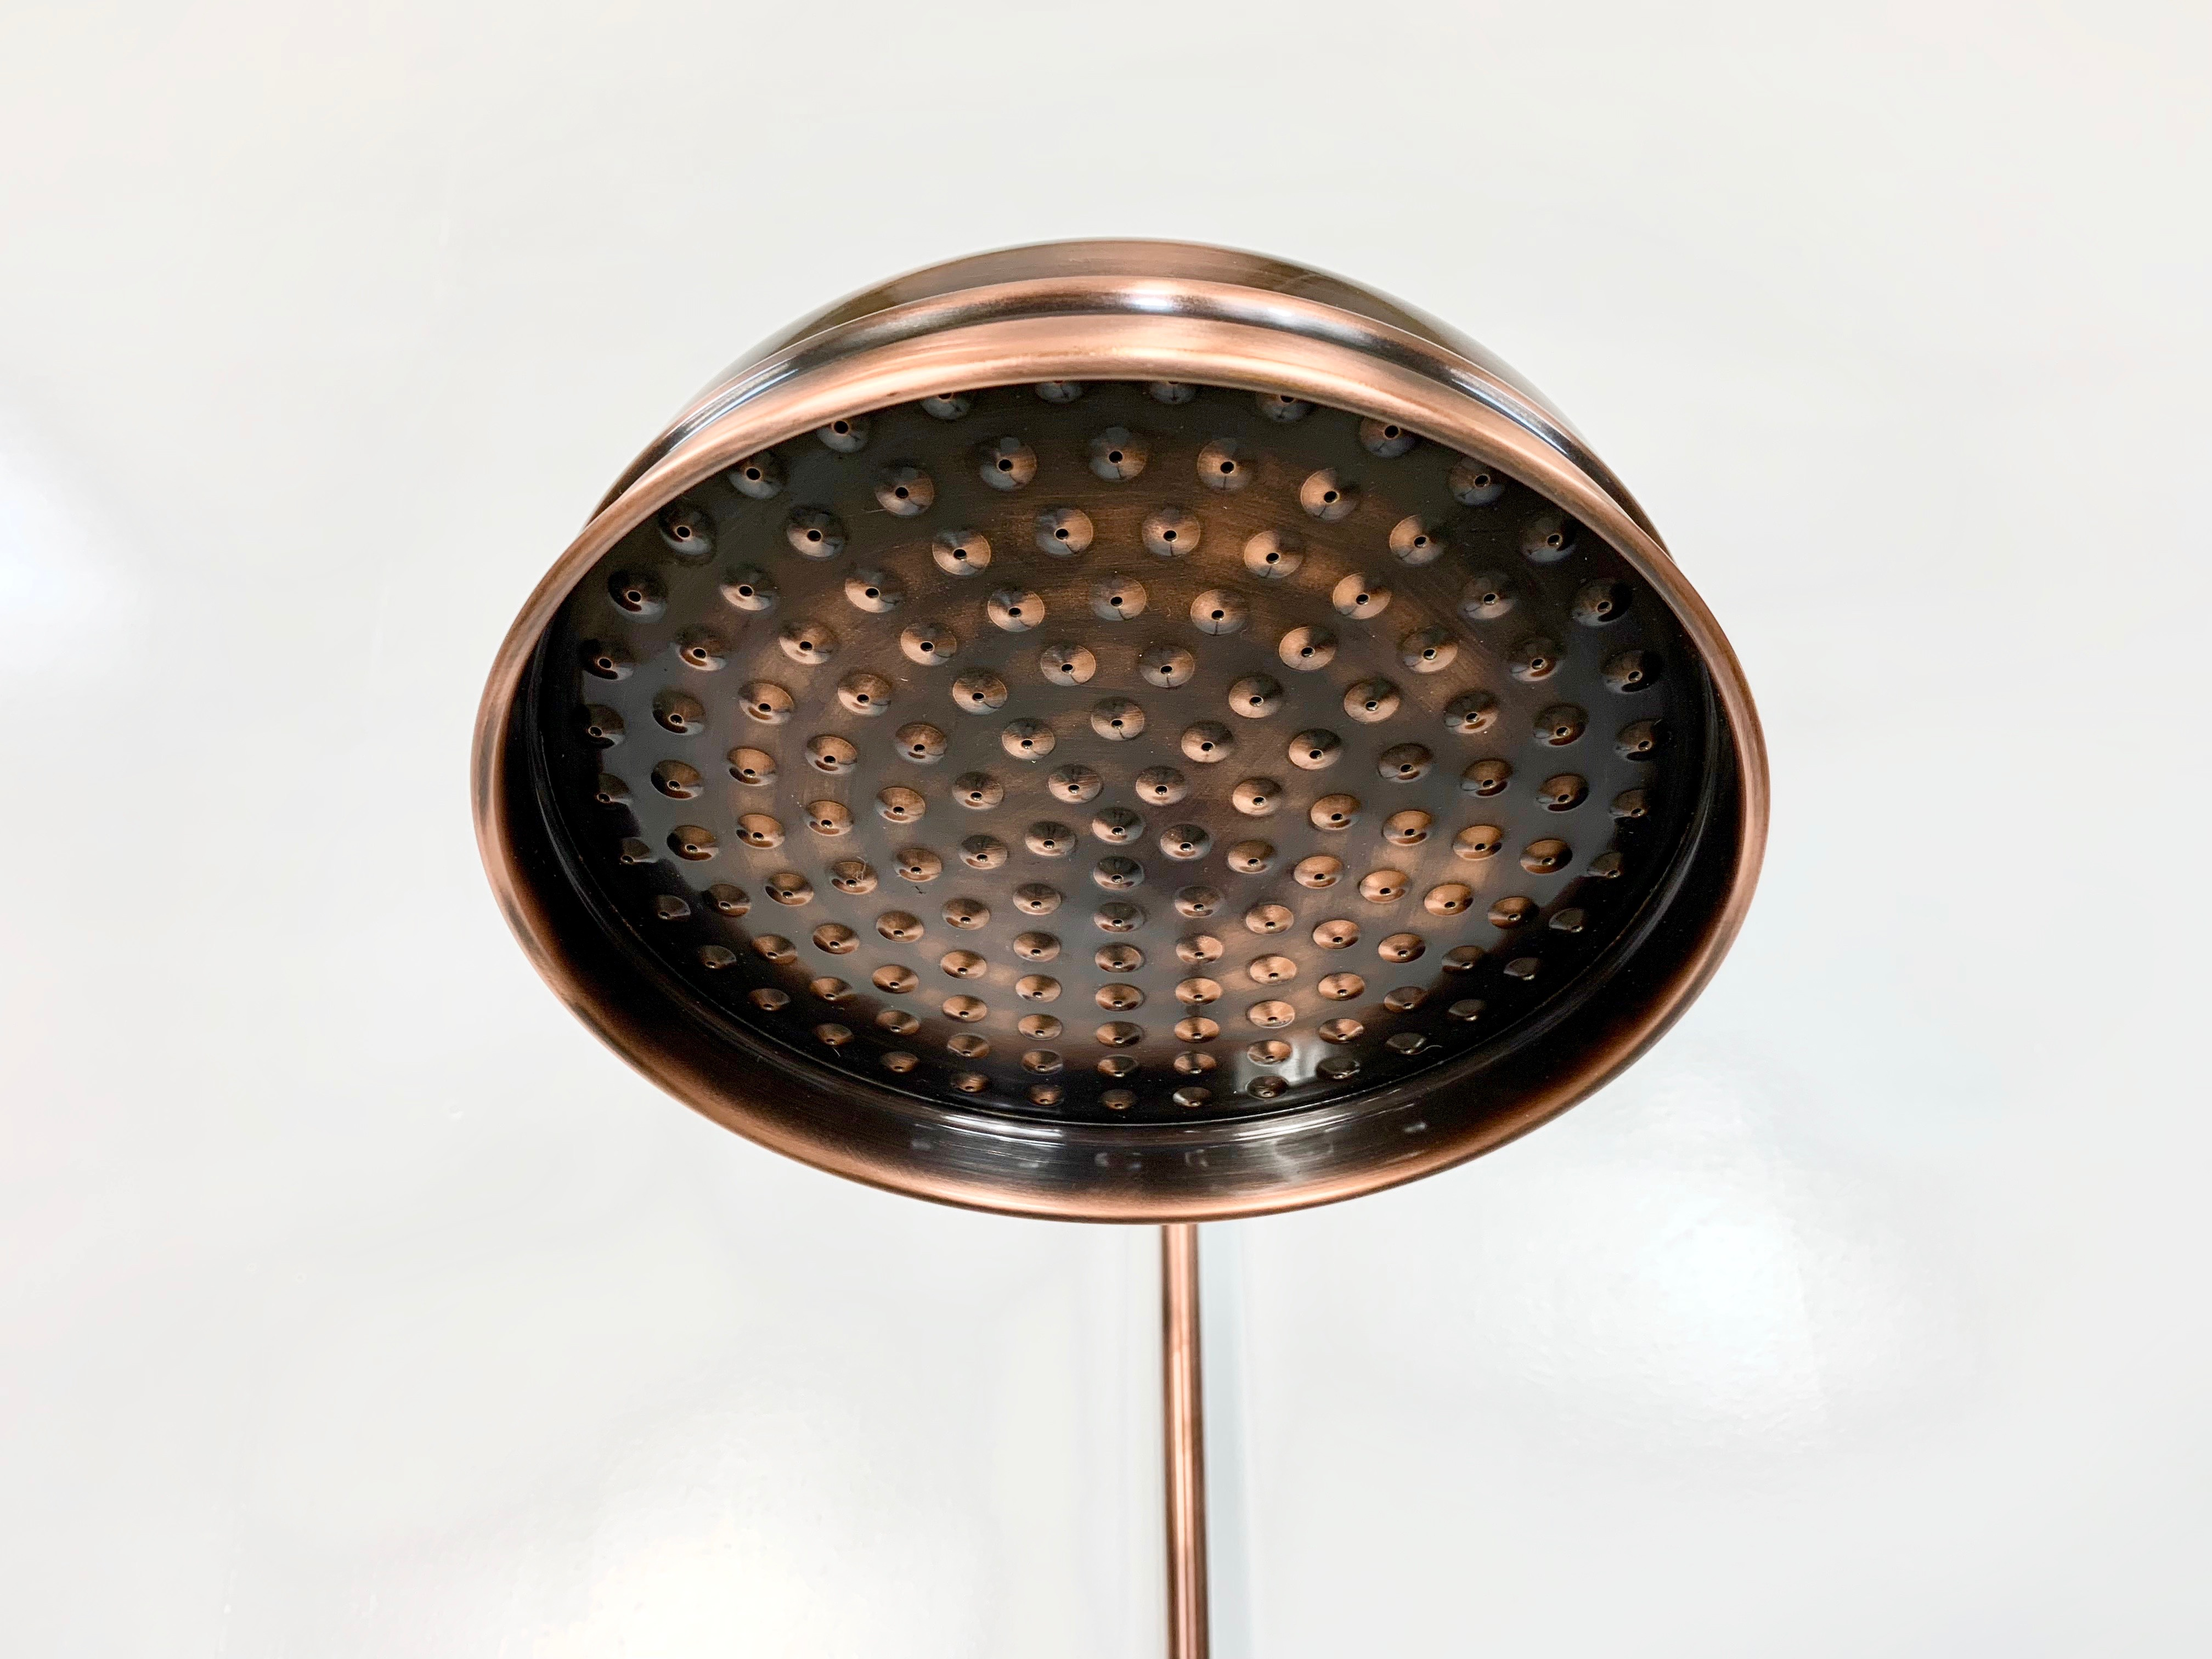 8 inch Rose in Aged Copper lacquered Finish